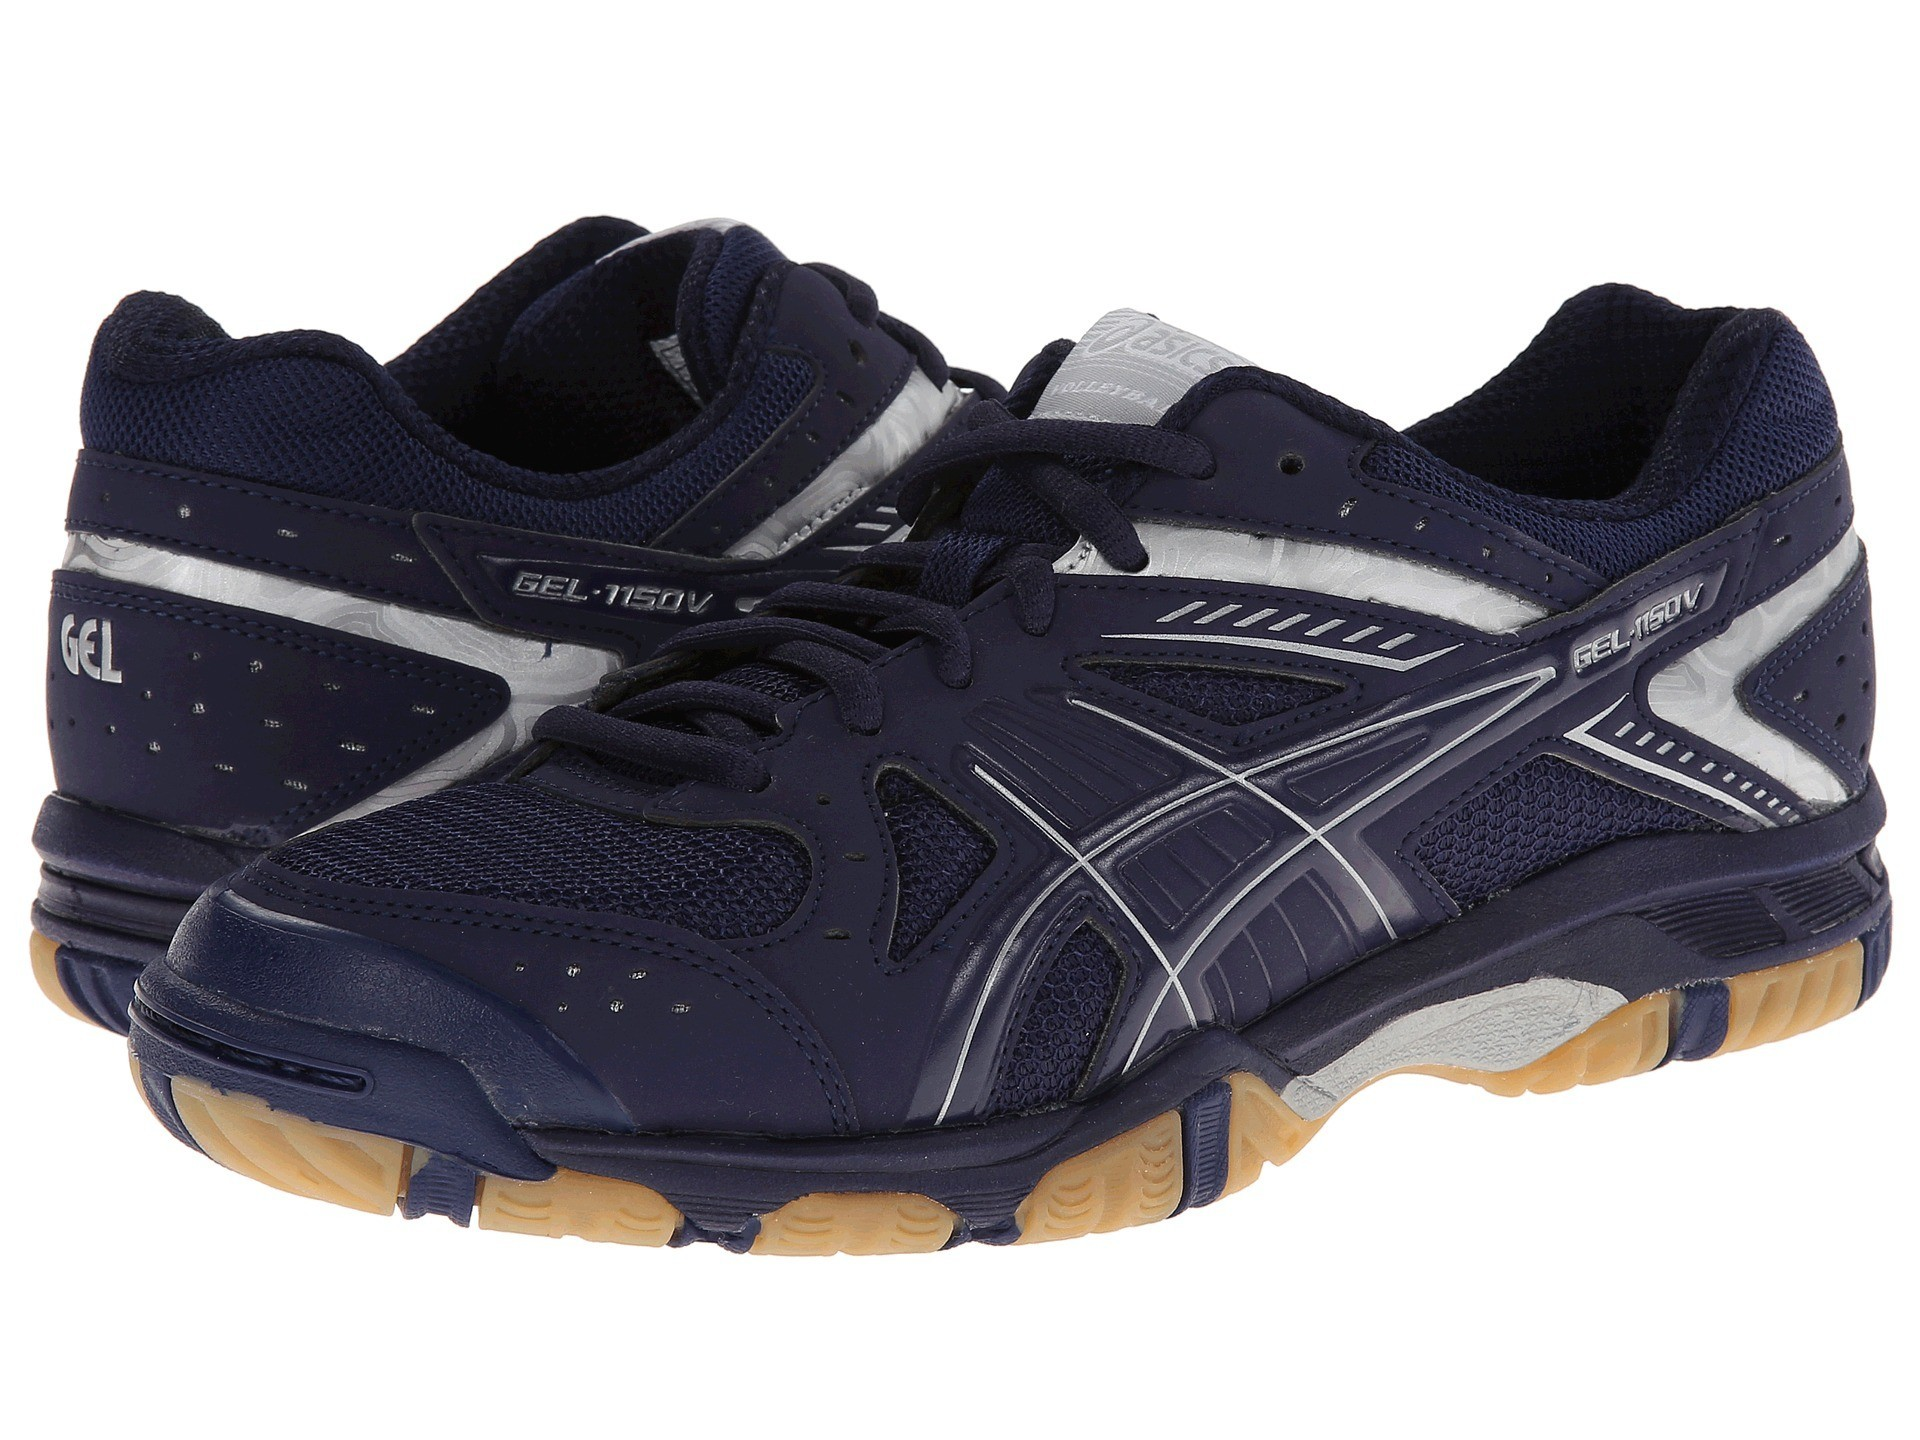 asics-gel-1150v-women-navy-silver